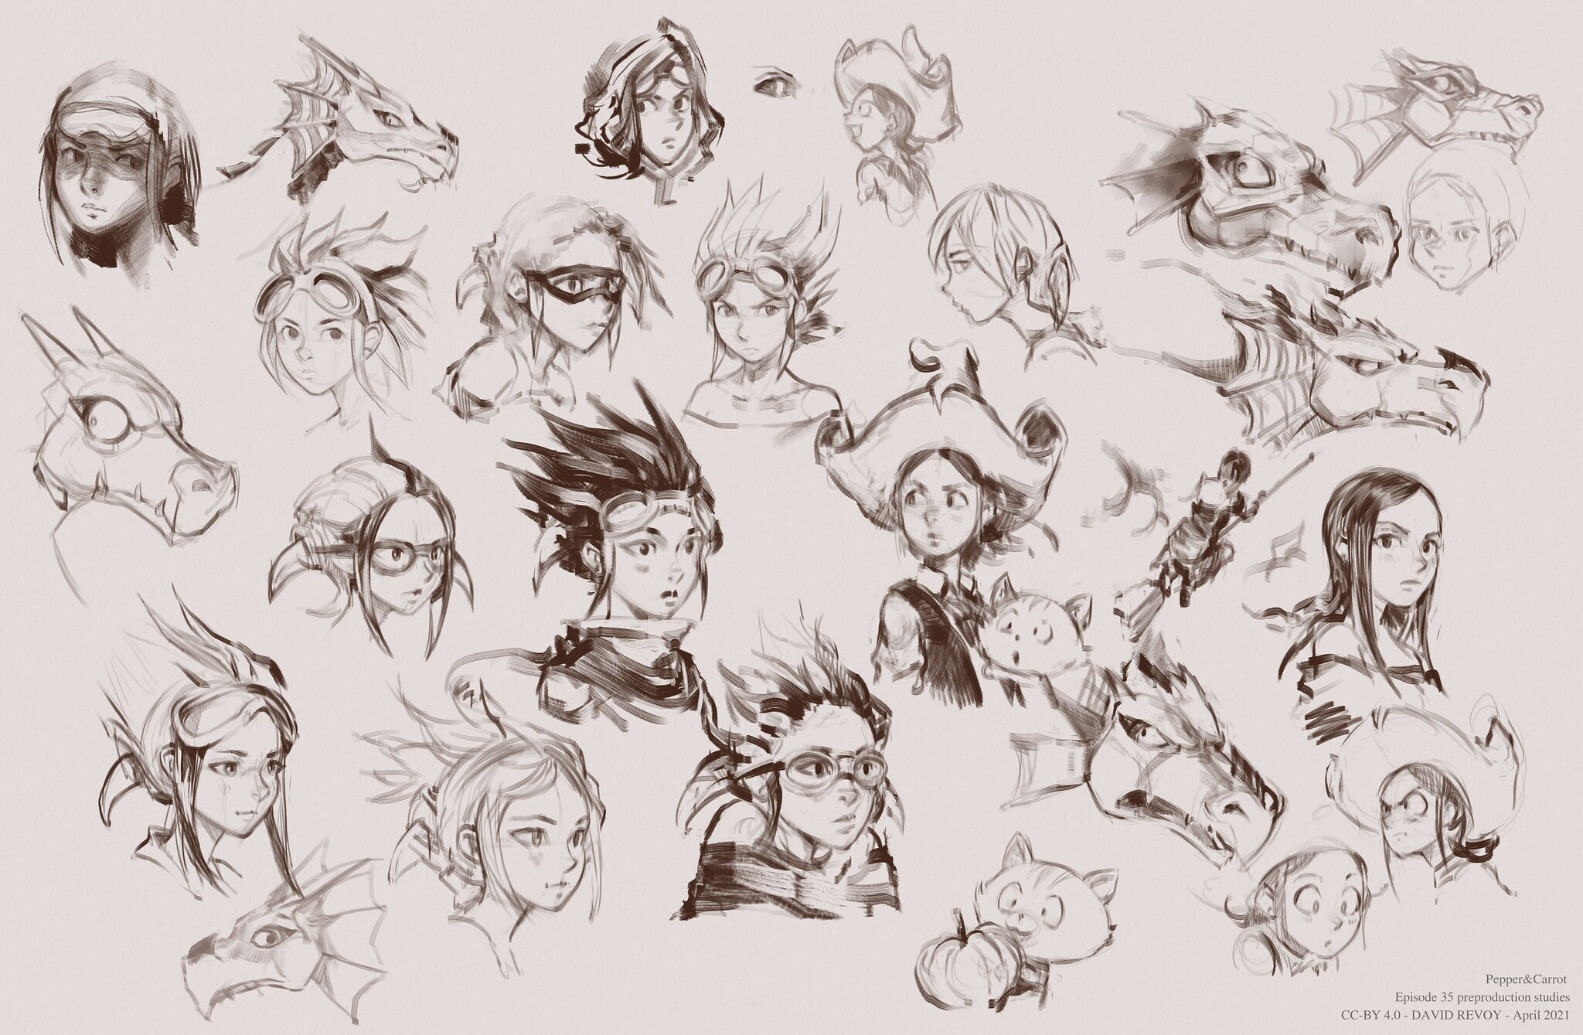 A montage of roughly 25 Sketches, featuring Pepper at various ages, Arra dragon, Carrot and Torreya the pilot.